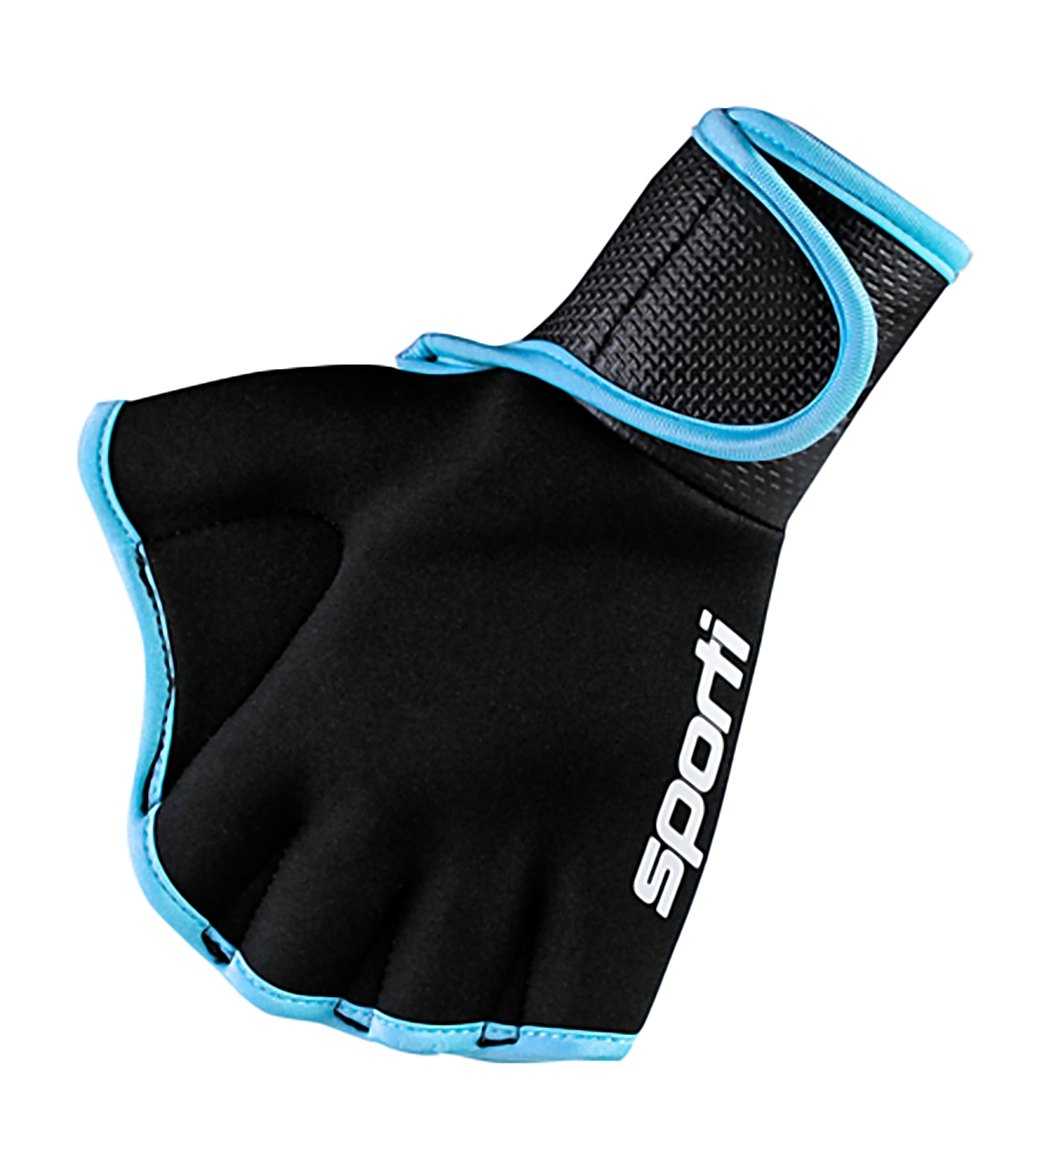 Fitness Gloves Com: Sporti Webbed Fitness Gloves At SwimOutlet.com